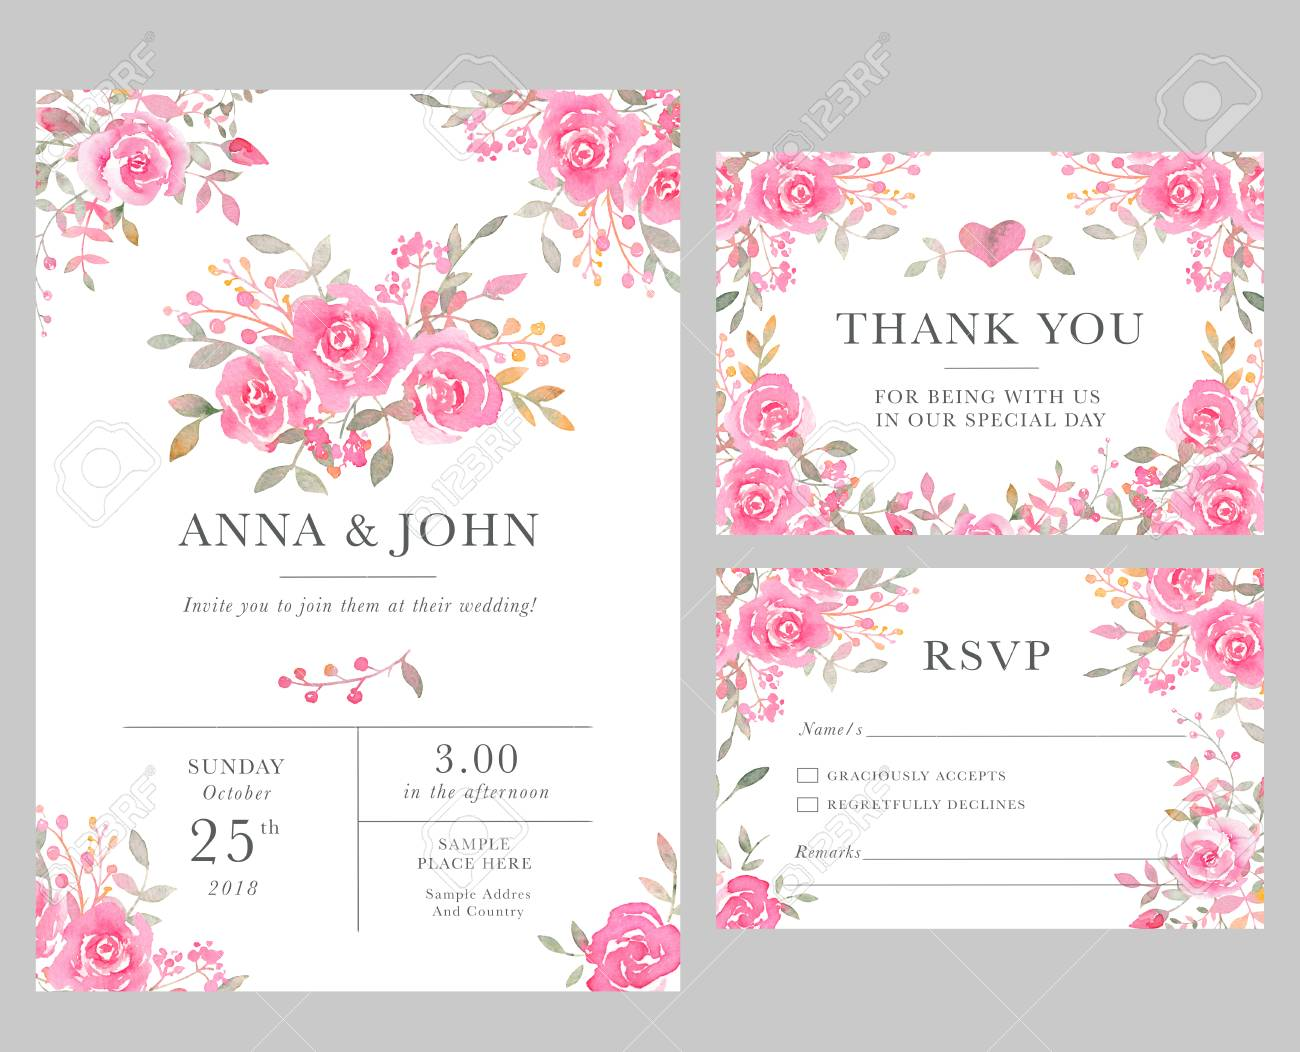 Wedding Invition Cards.Set Of Wedding Invitation Card Templates With Watercolor Rose